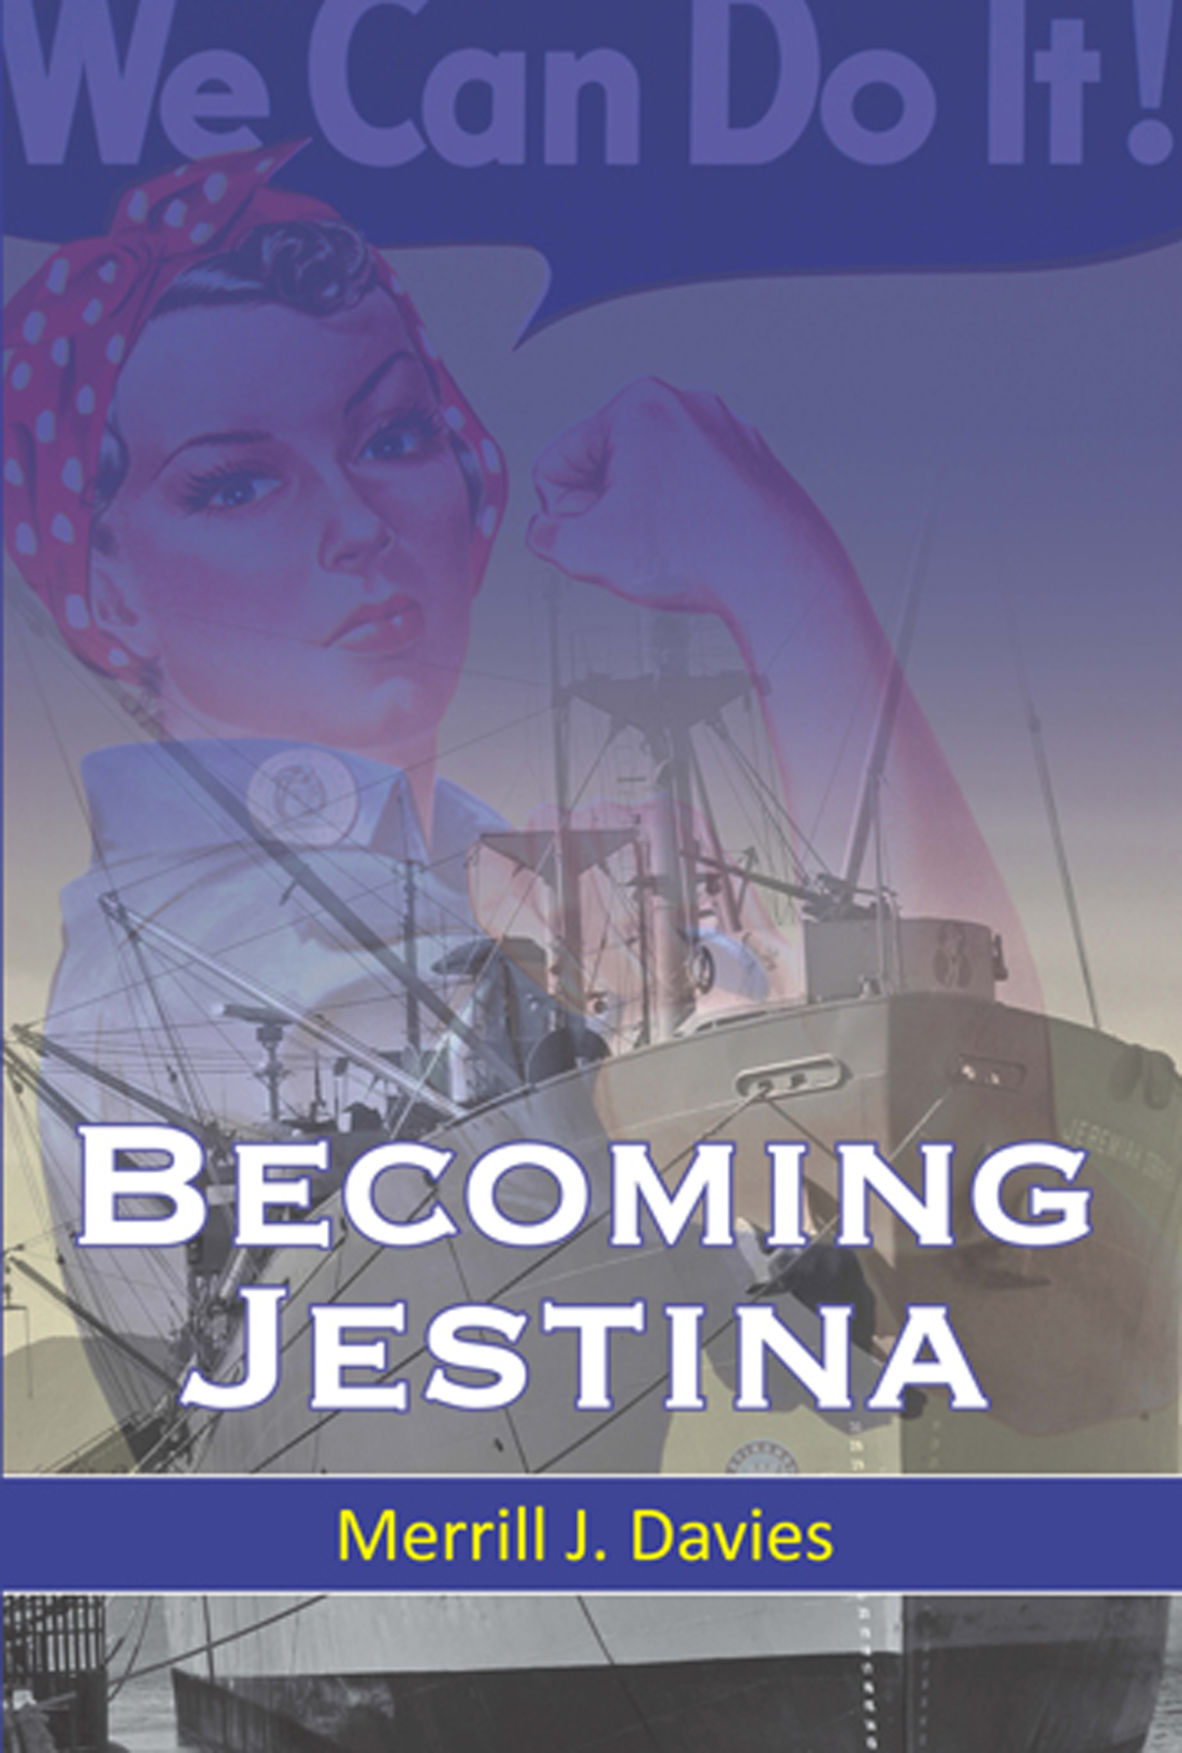 Becoming Jestina